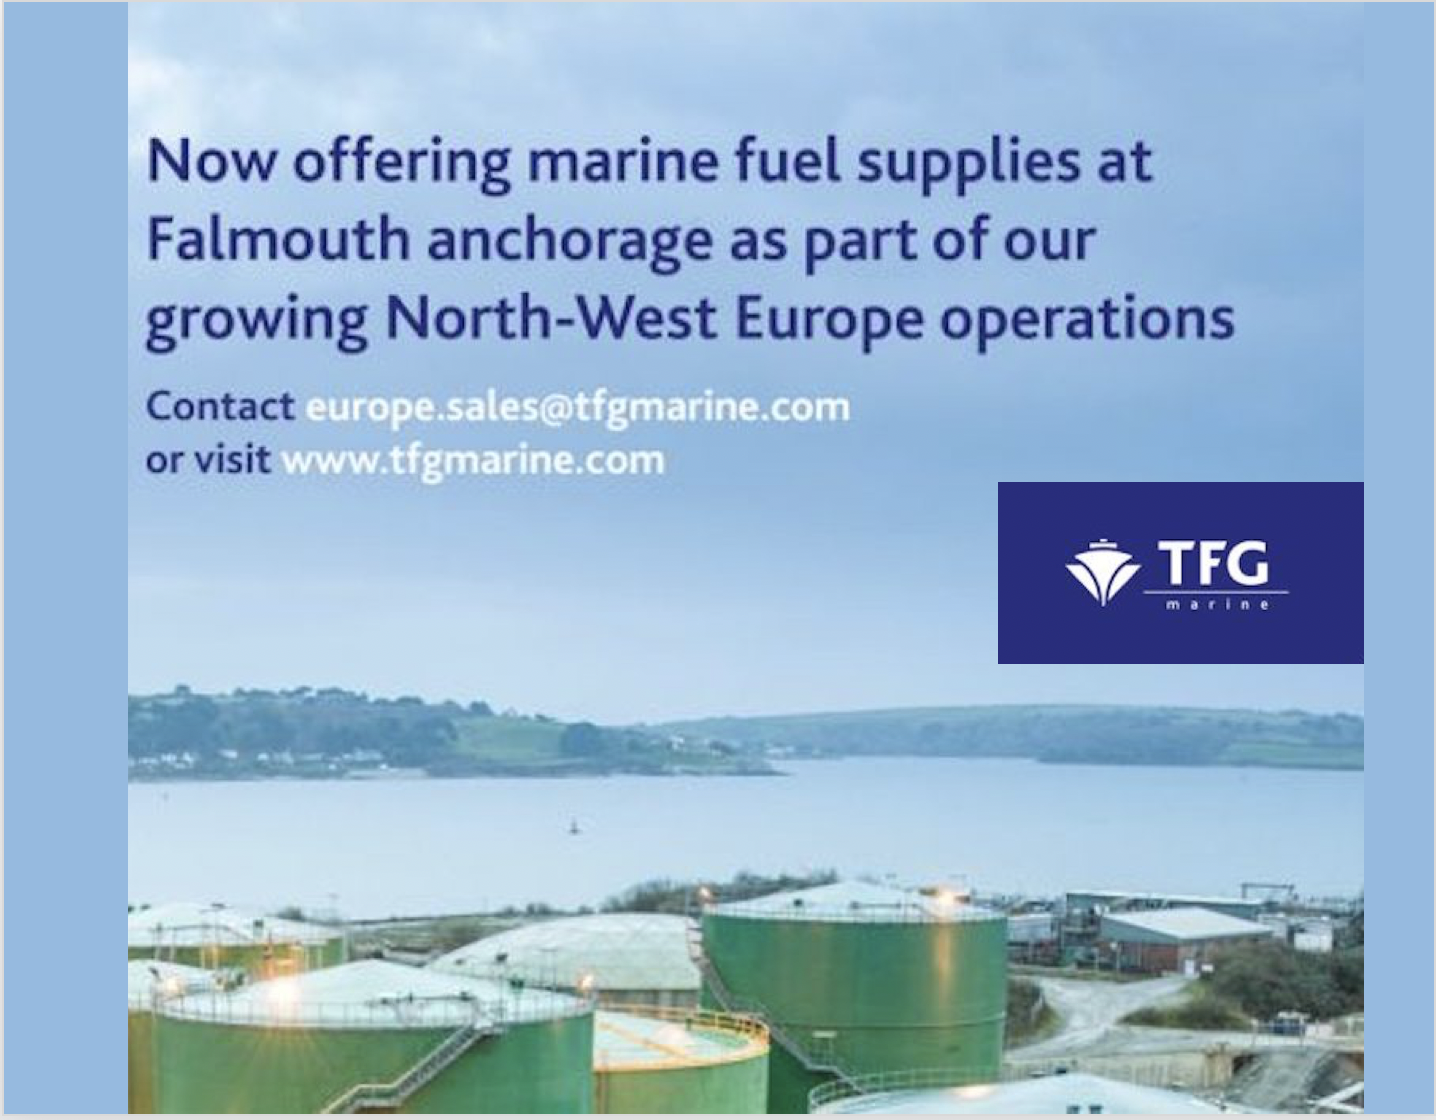 TFG Marine to commence bunkering operations at Falmouth Anchorage UK